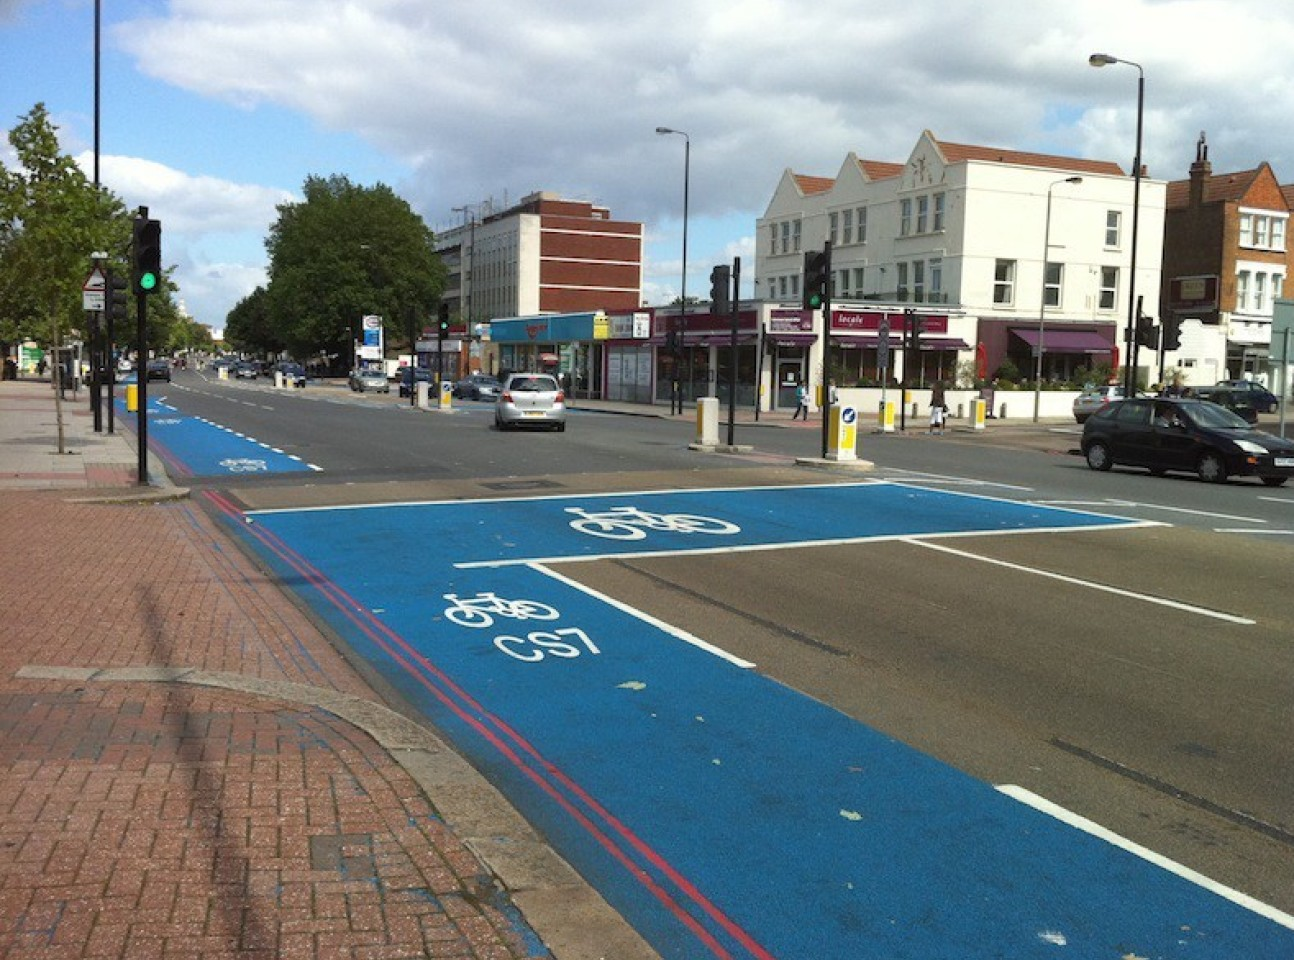 Cycle lane in blue along a main road